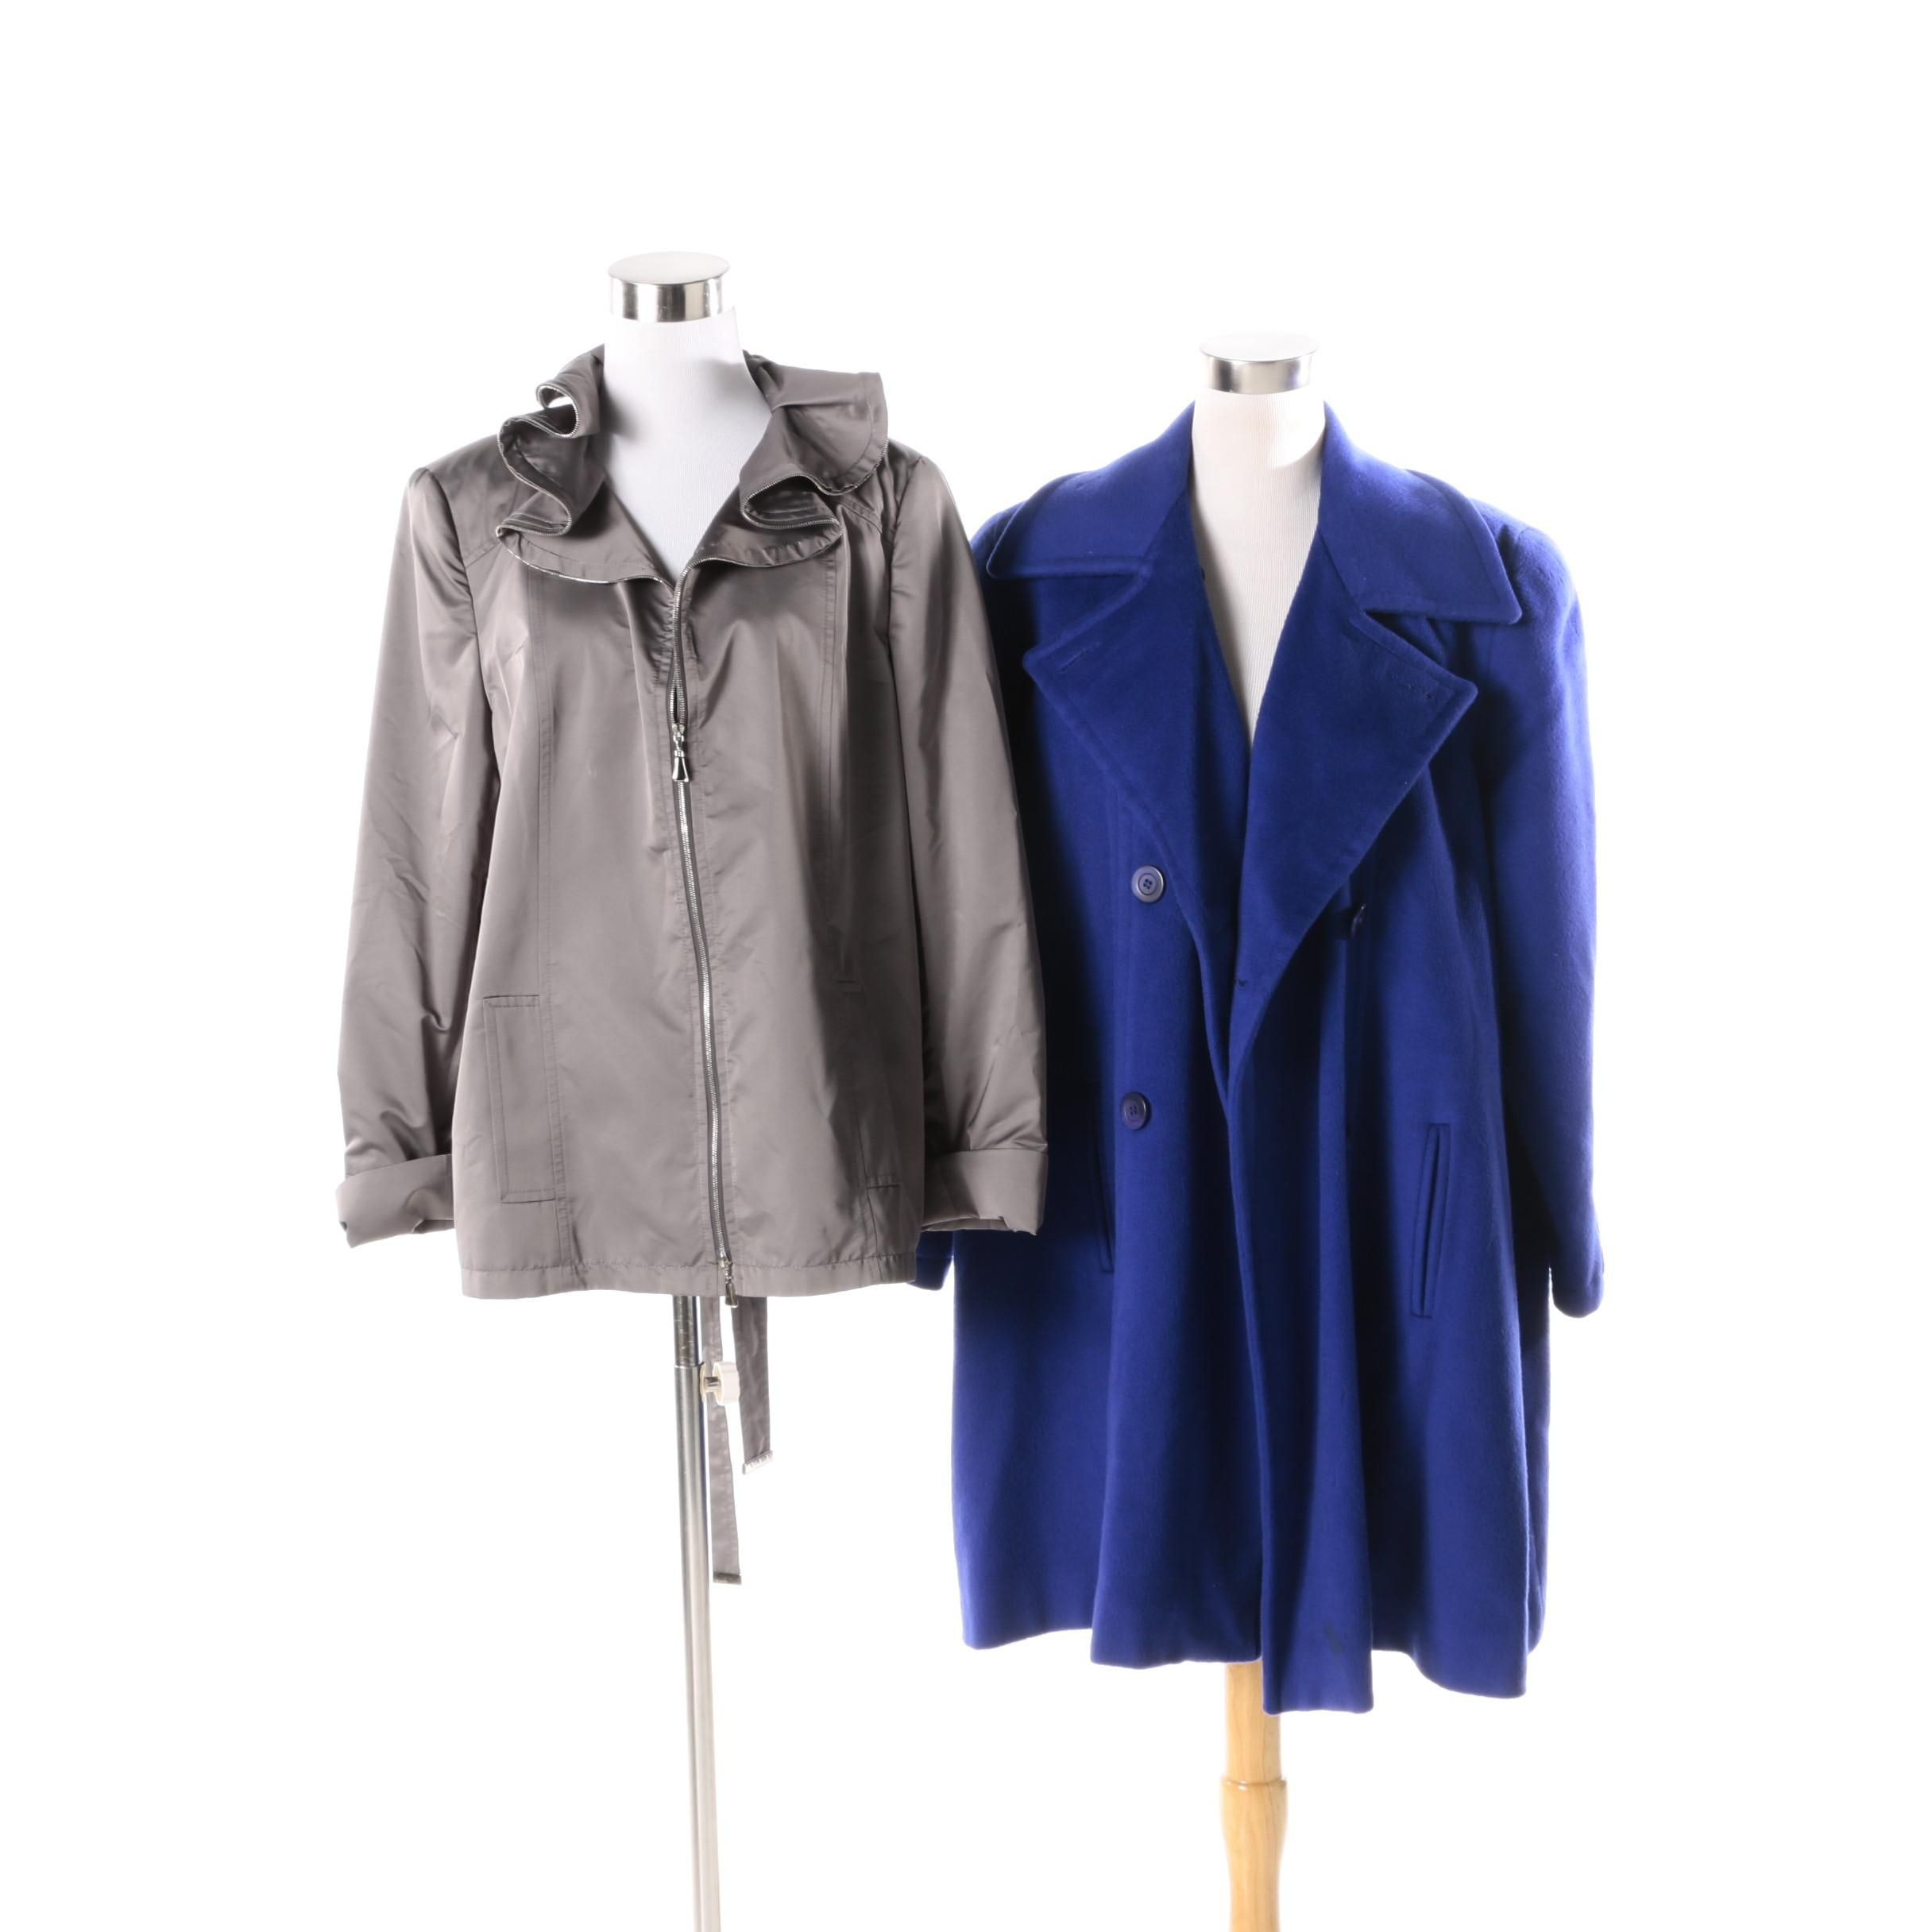 Women's Outerwear Including Escada